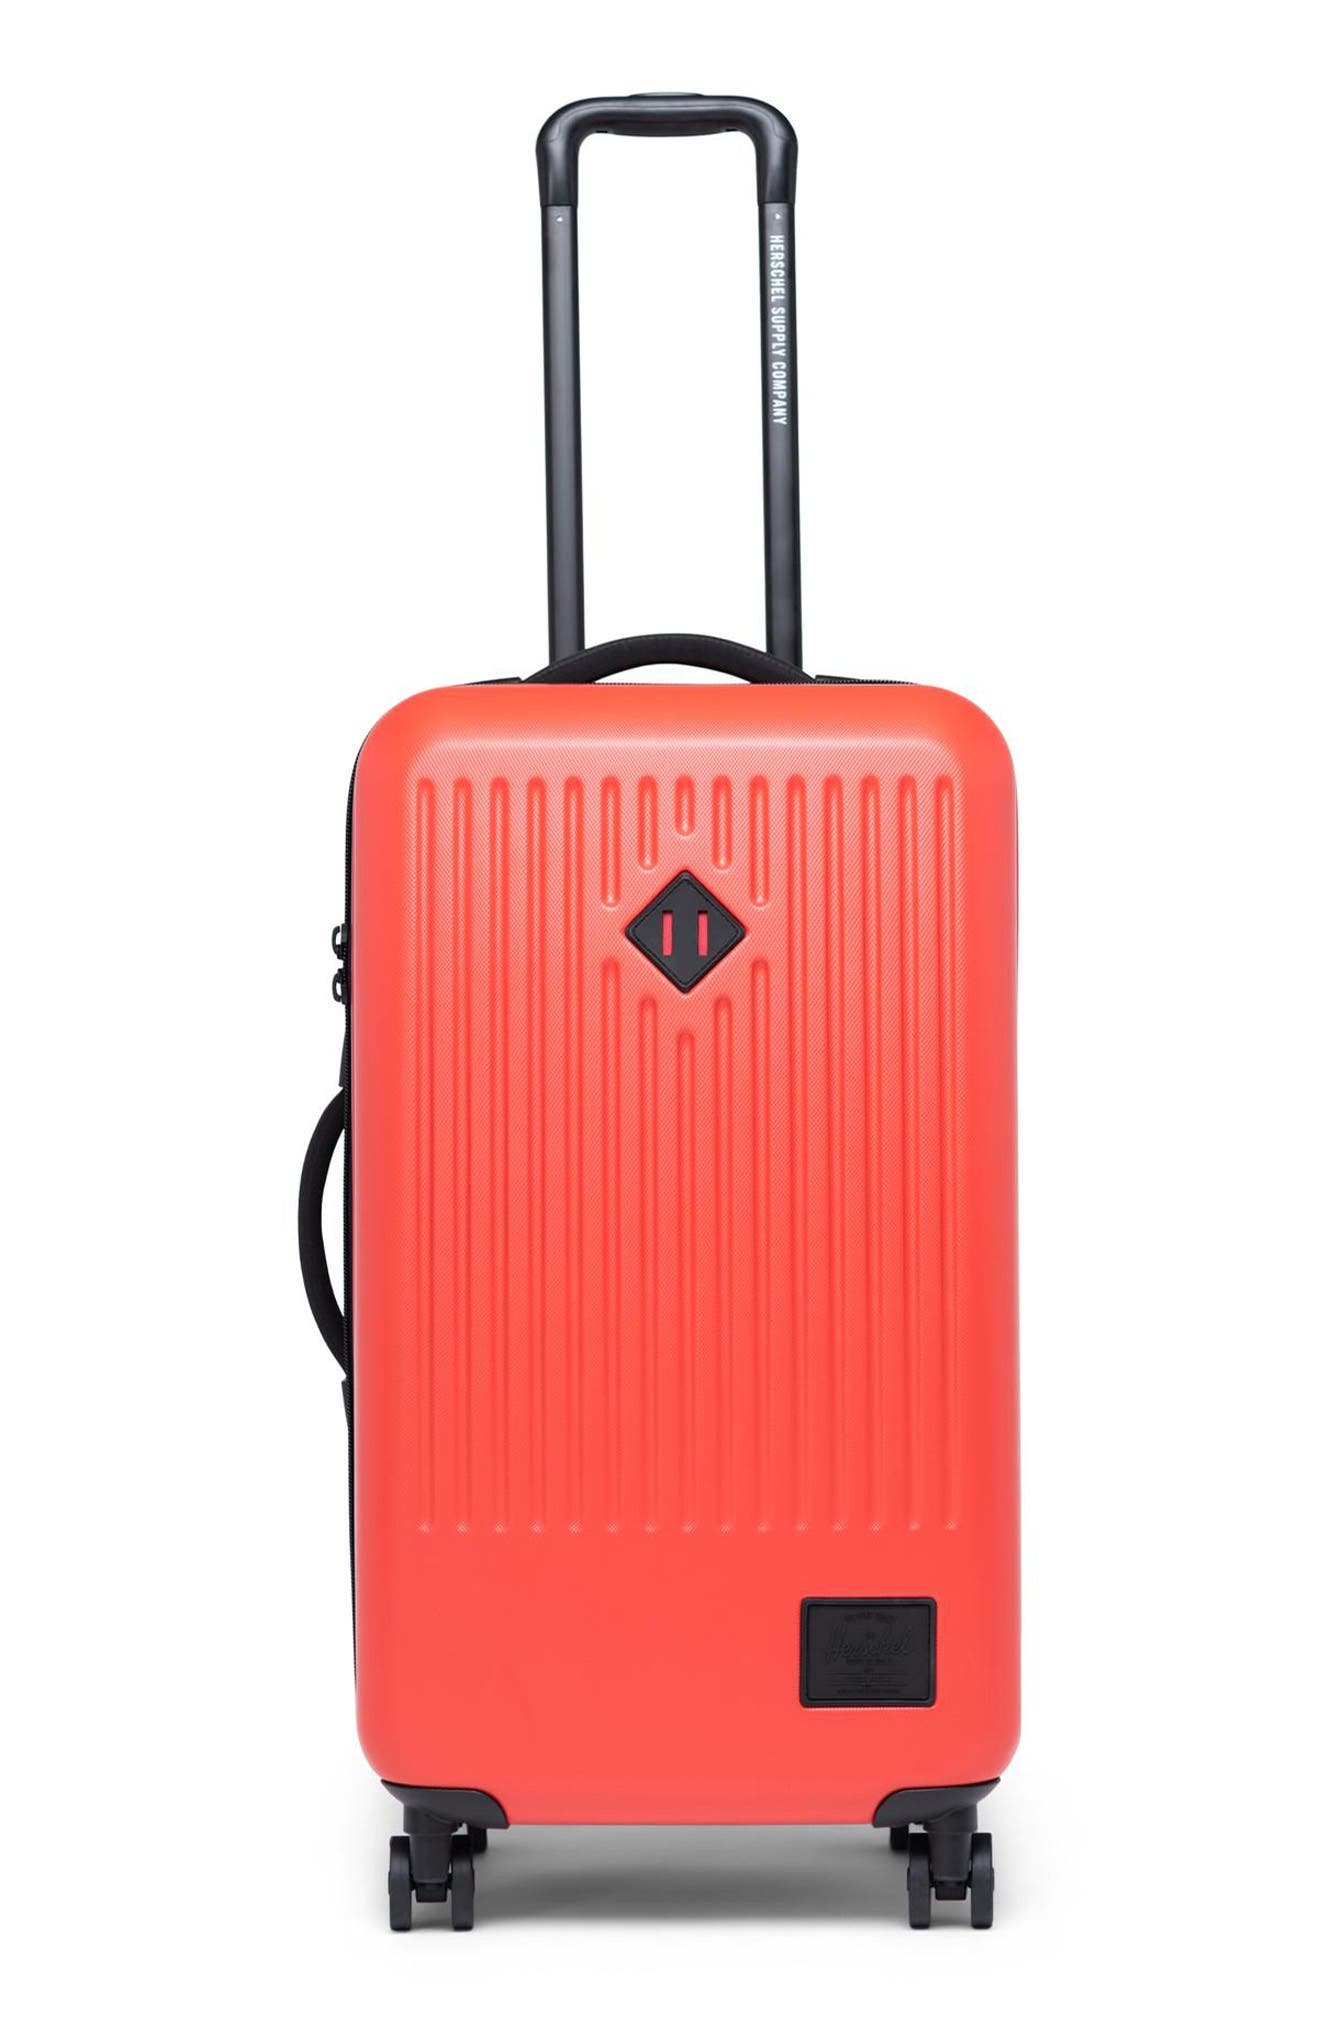 Durable yet lightweight, this modern hardside packing case features a spacious main compartment with room for everything you need on a long trip. Closure: The two-way zip-around closure features a low-profile, integrated TSA-approved lock with a three-digit combination dial for extra security. Exterior features: A set of four multidirectional wheels and a retractable, two-stage locking trolley handle mean smooth-rolling convenience on the